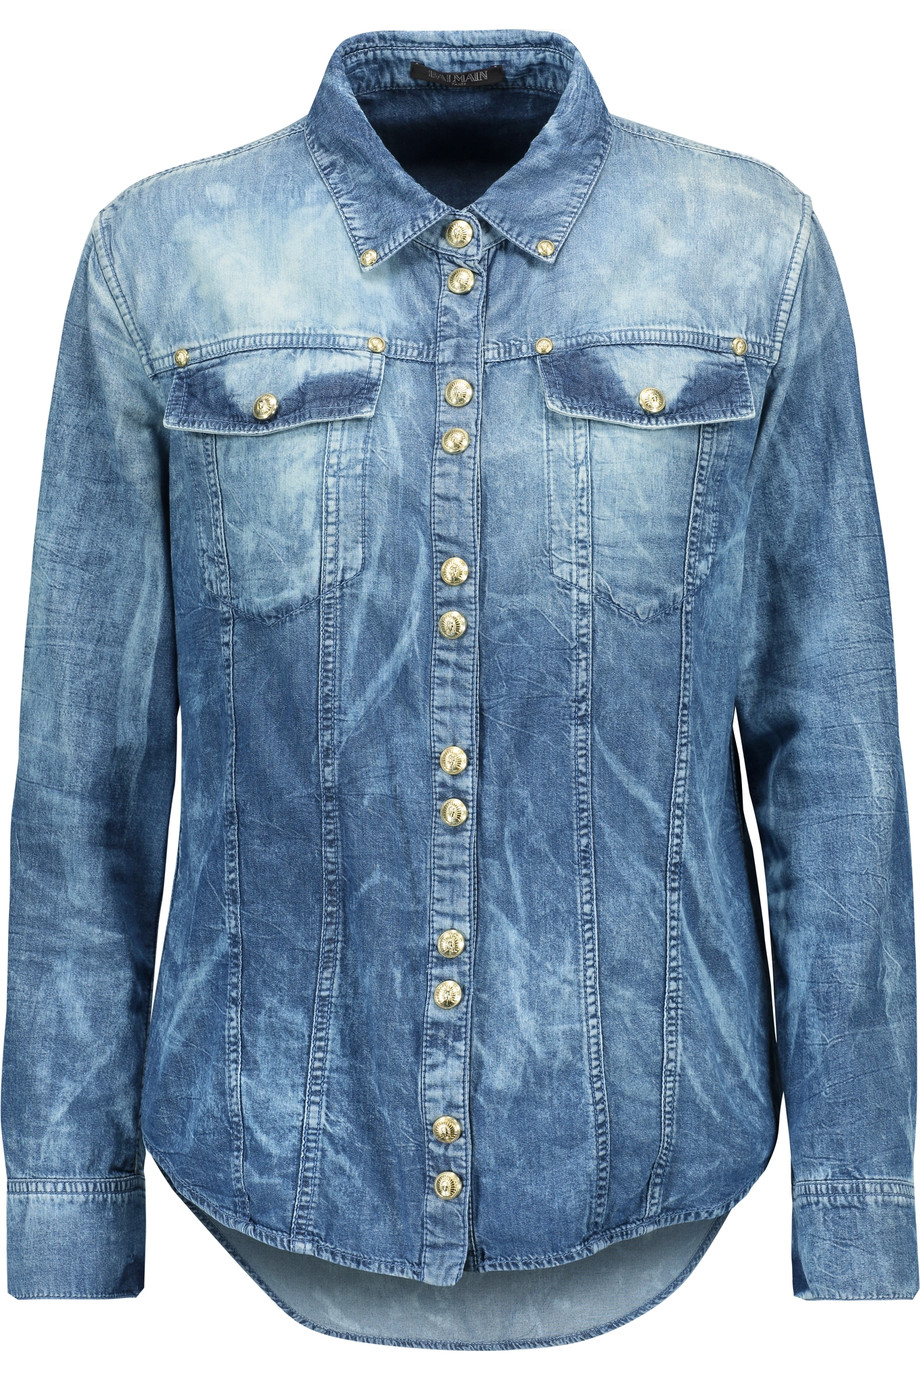 29b36036 Balmain Denim Shirt | ModeSens